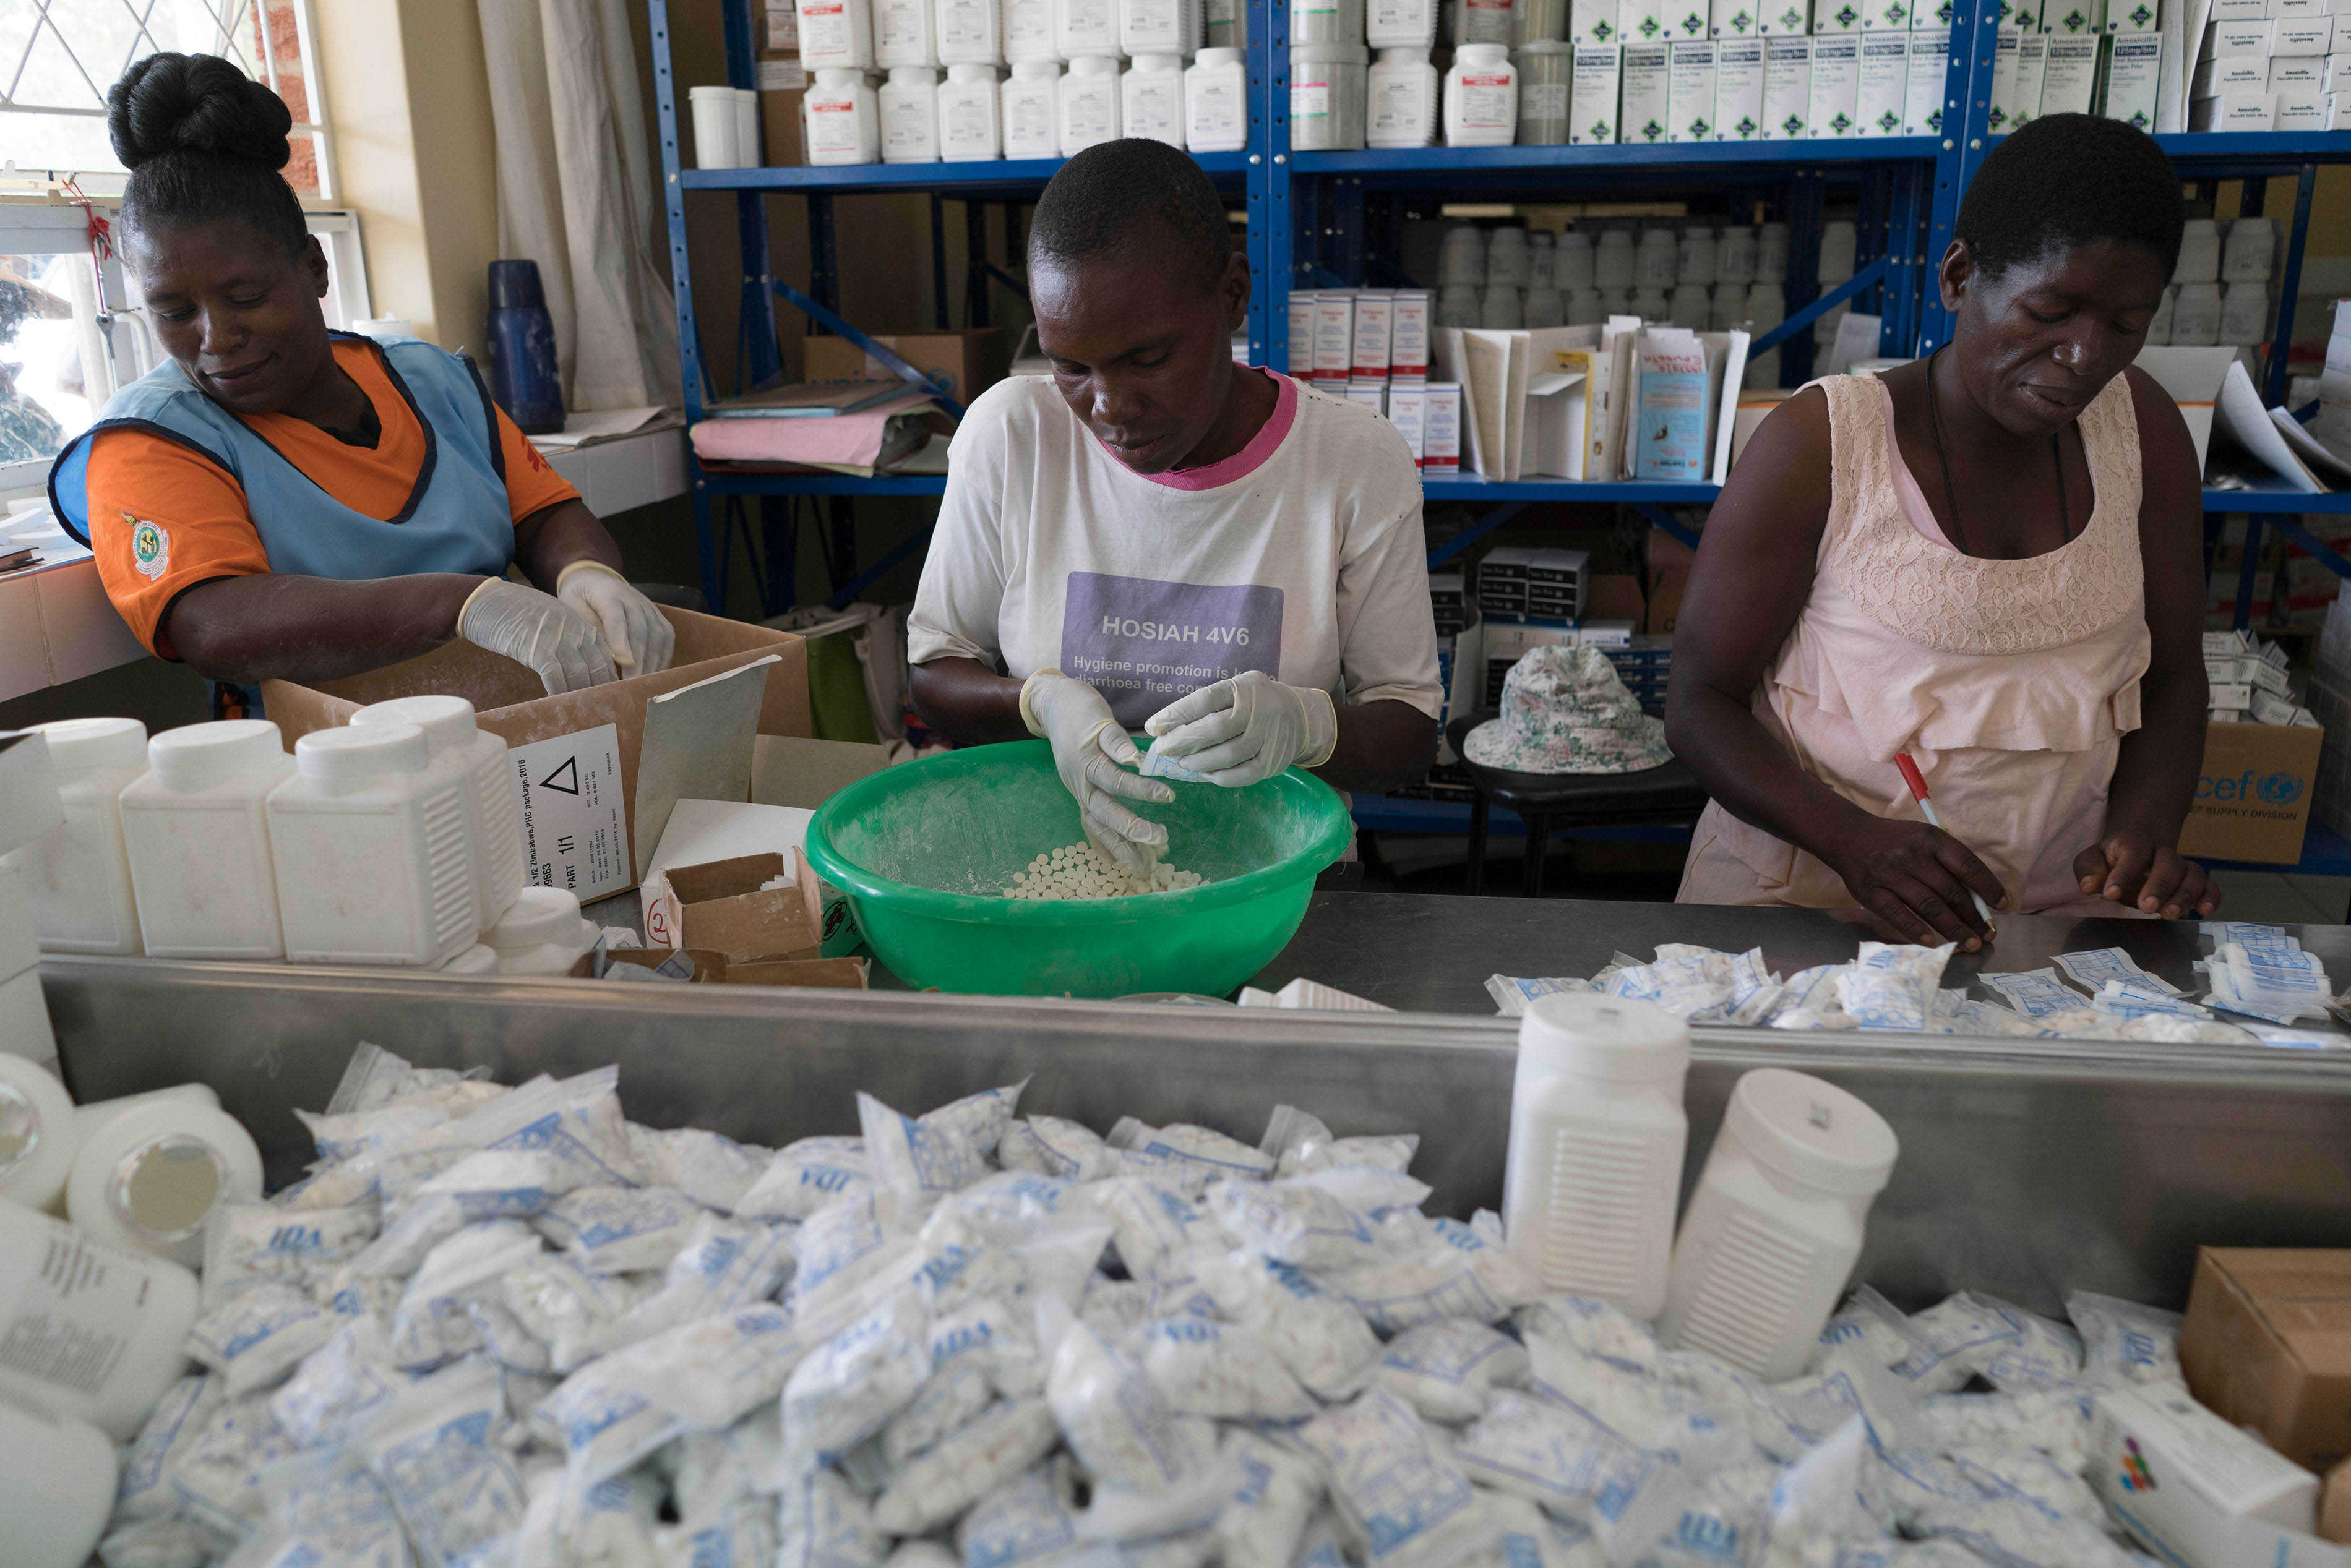 MSF trained staff pack bags of medication for TB and HIV patients at the pharmacy at Epworth Clinic, on Harare's outskirts.